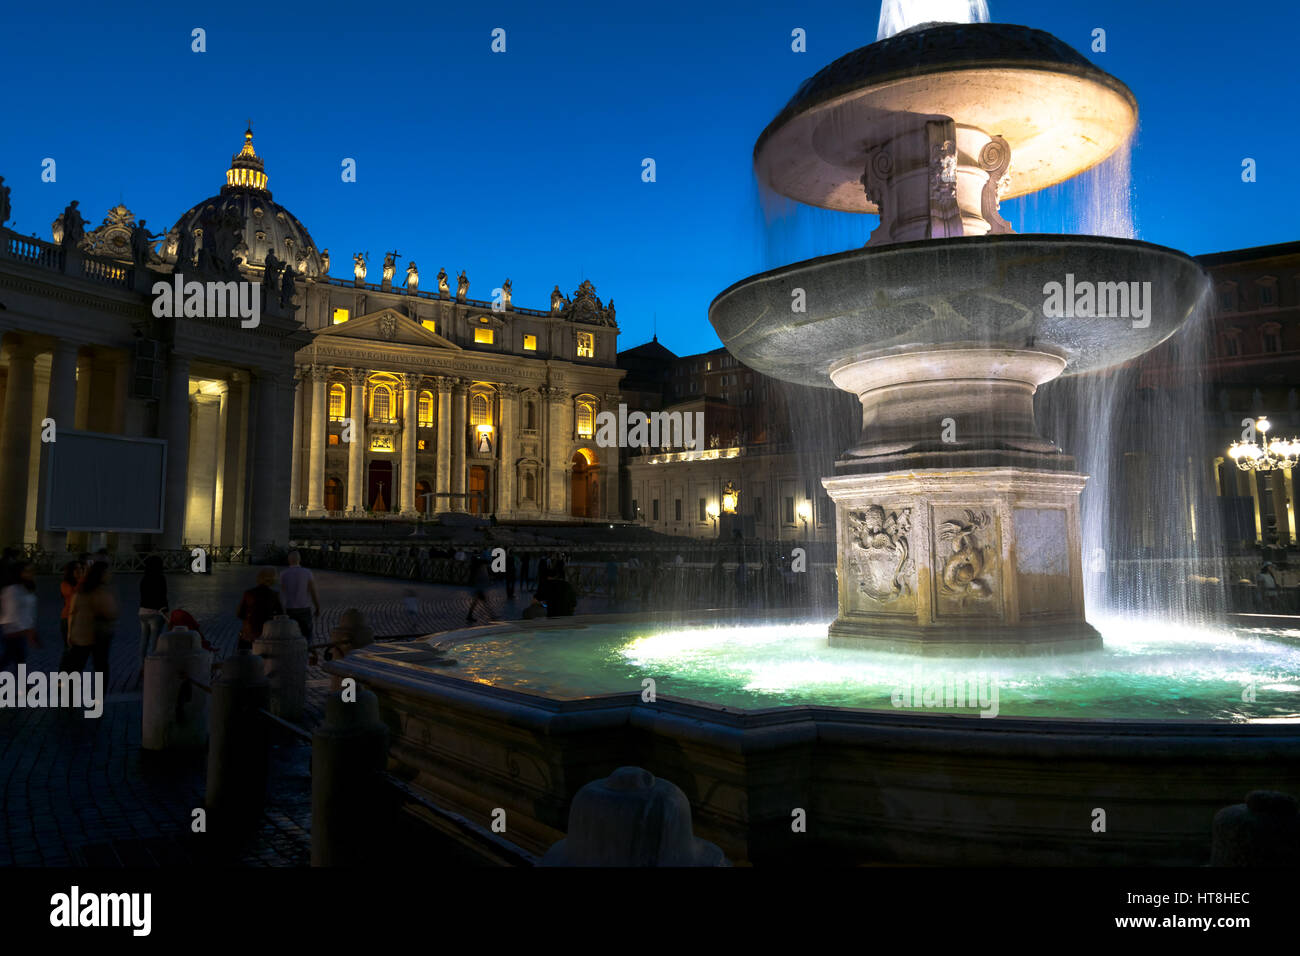 Piazza San Pietro glimmering during the evening hours, with a grandiose water fountain in the foreground. - Stock Image